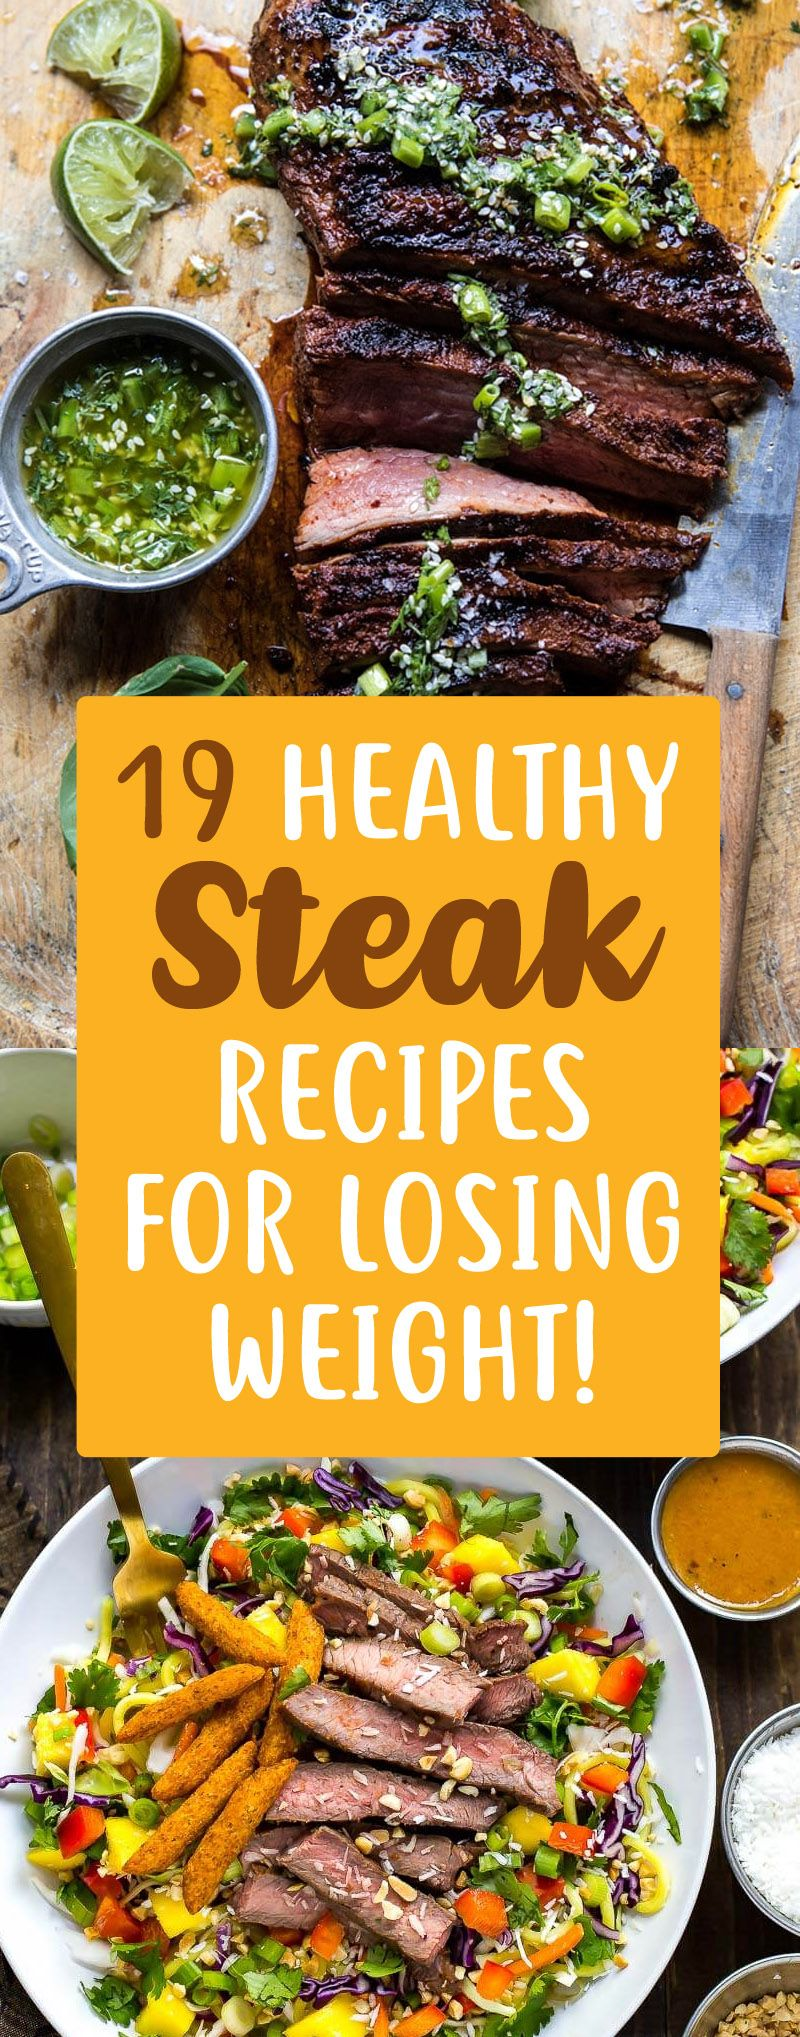 14 healthy recipes steak